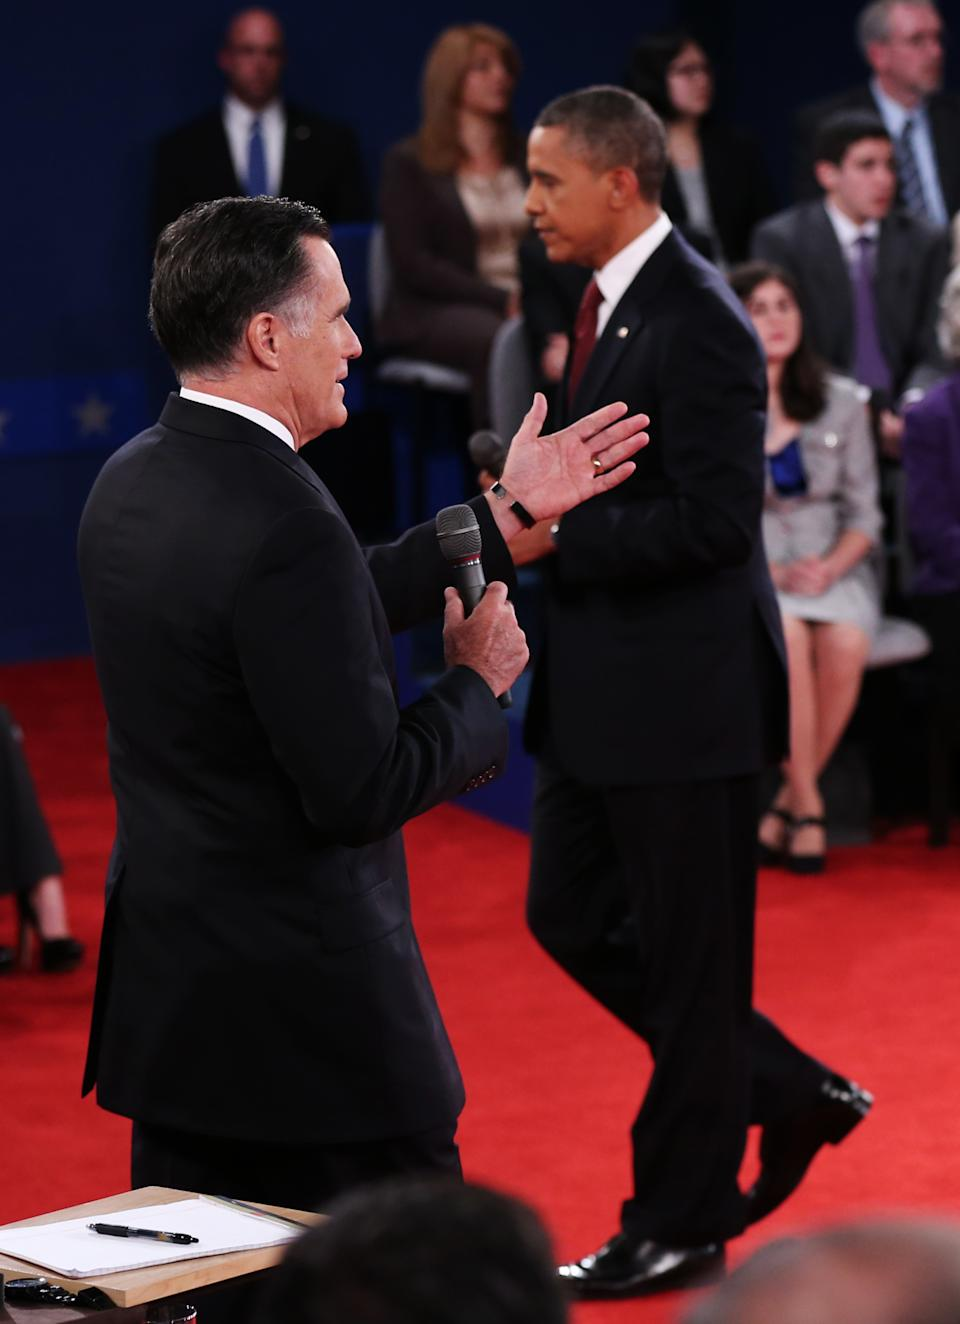 President Barack Obama, right, walks past as Republican presidential nominee Mitt Romney members of the audience during the second presidential debate at Hofstra University, Tuesday, Oct. 16, 2012, in Hempstead, N.Y. (AP Photo/Pool-Win McNamee)